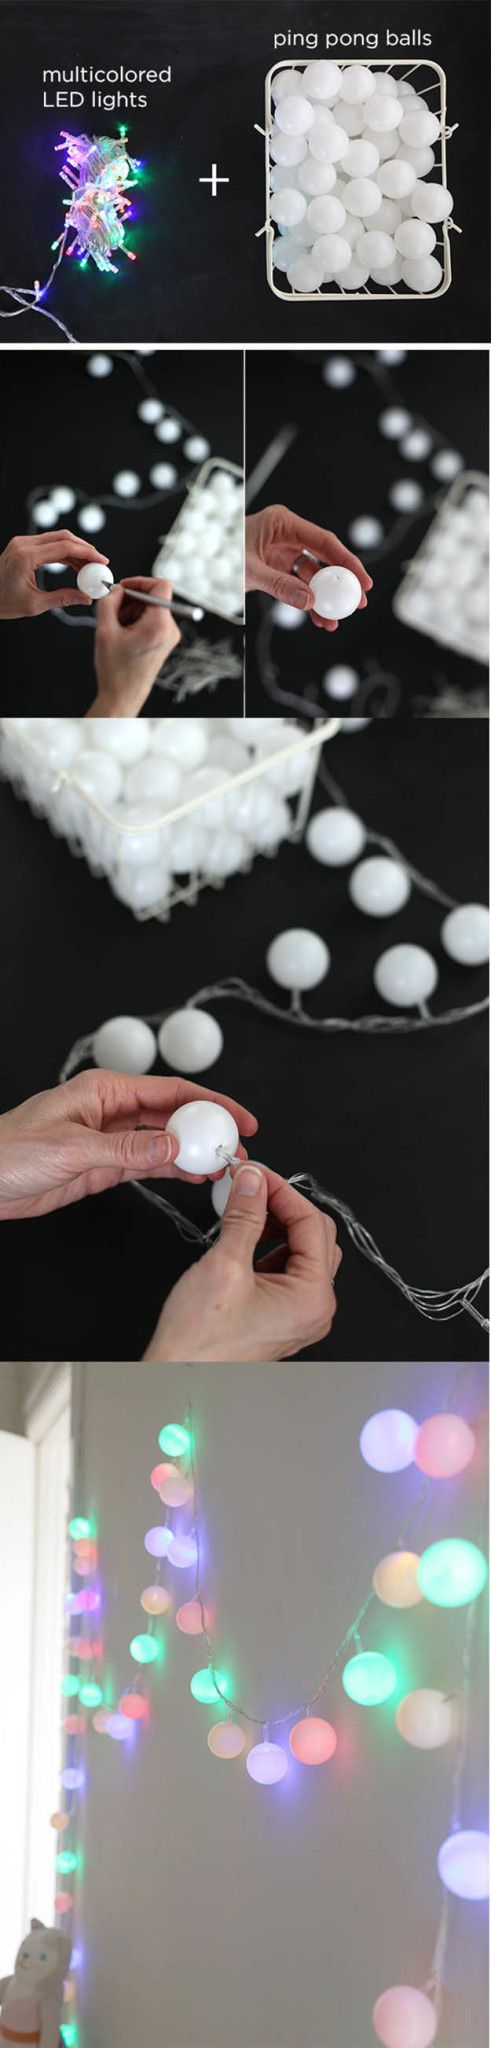 Save on crafts/ 31 Nifty DIY crafts. I love these ping pong ball lights. You could make them in any color for any occasion or hang them in the yard for fun get togethers.